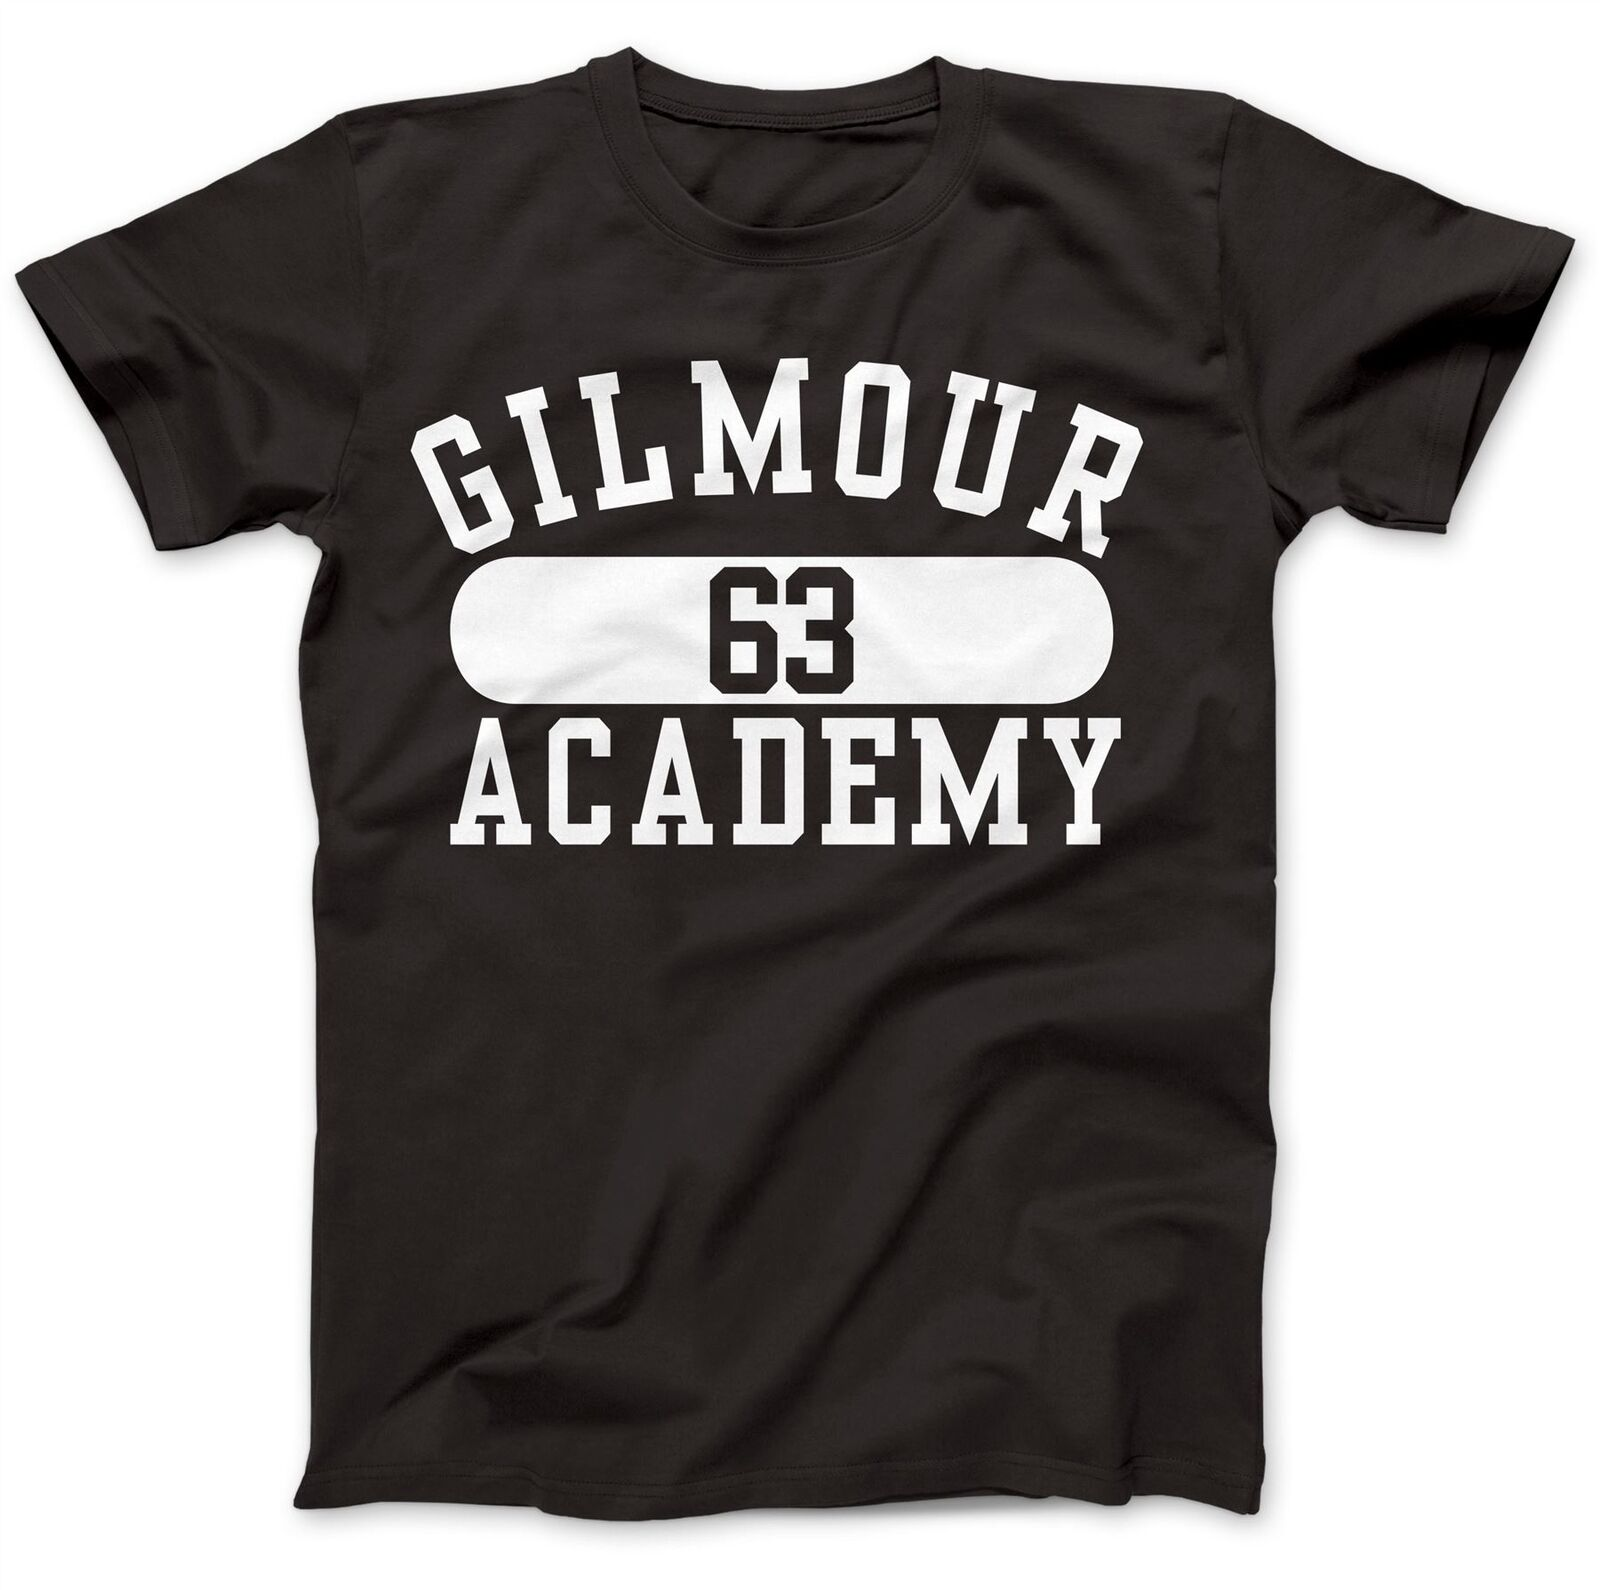 As Worn By Dave Gilmour Academy T Shirt 100% Premium Cotton Floyd The Wall Cheap Wholesale tees,100% Cotton For Man